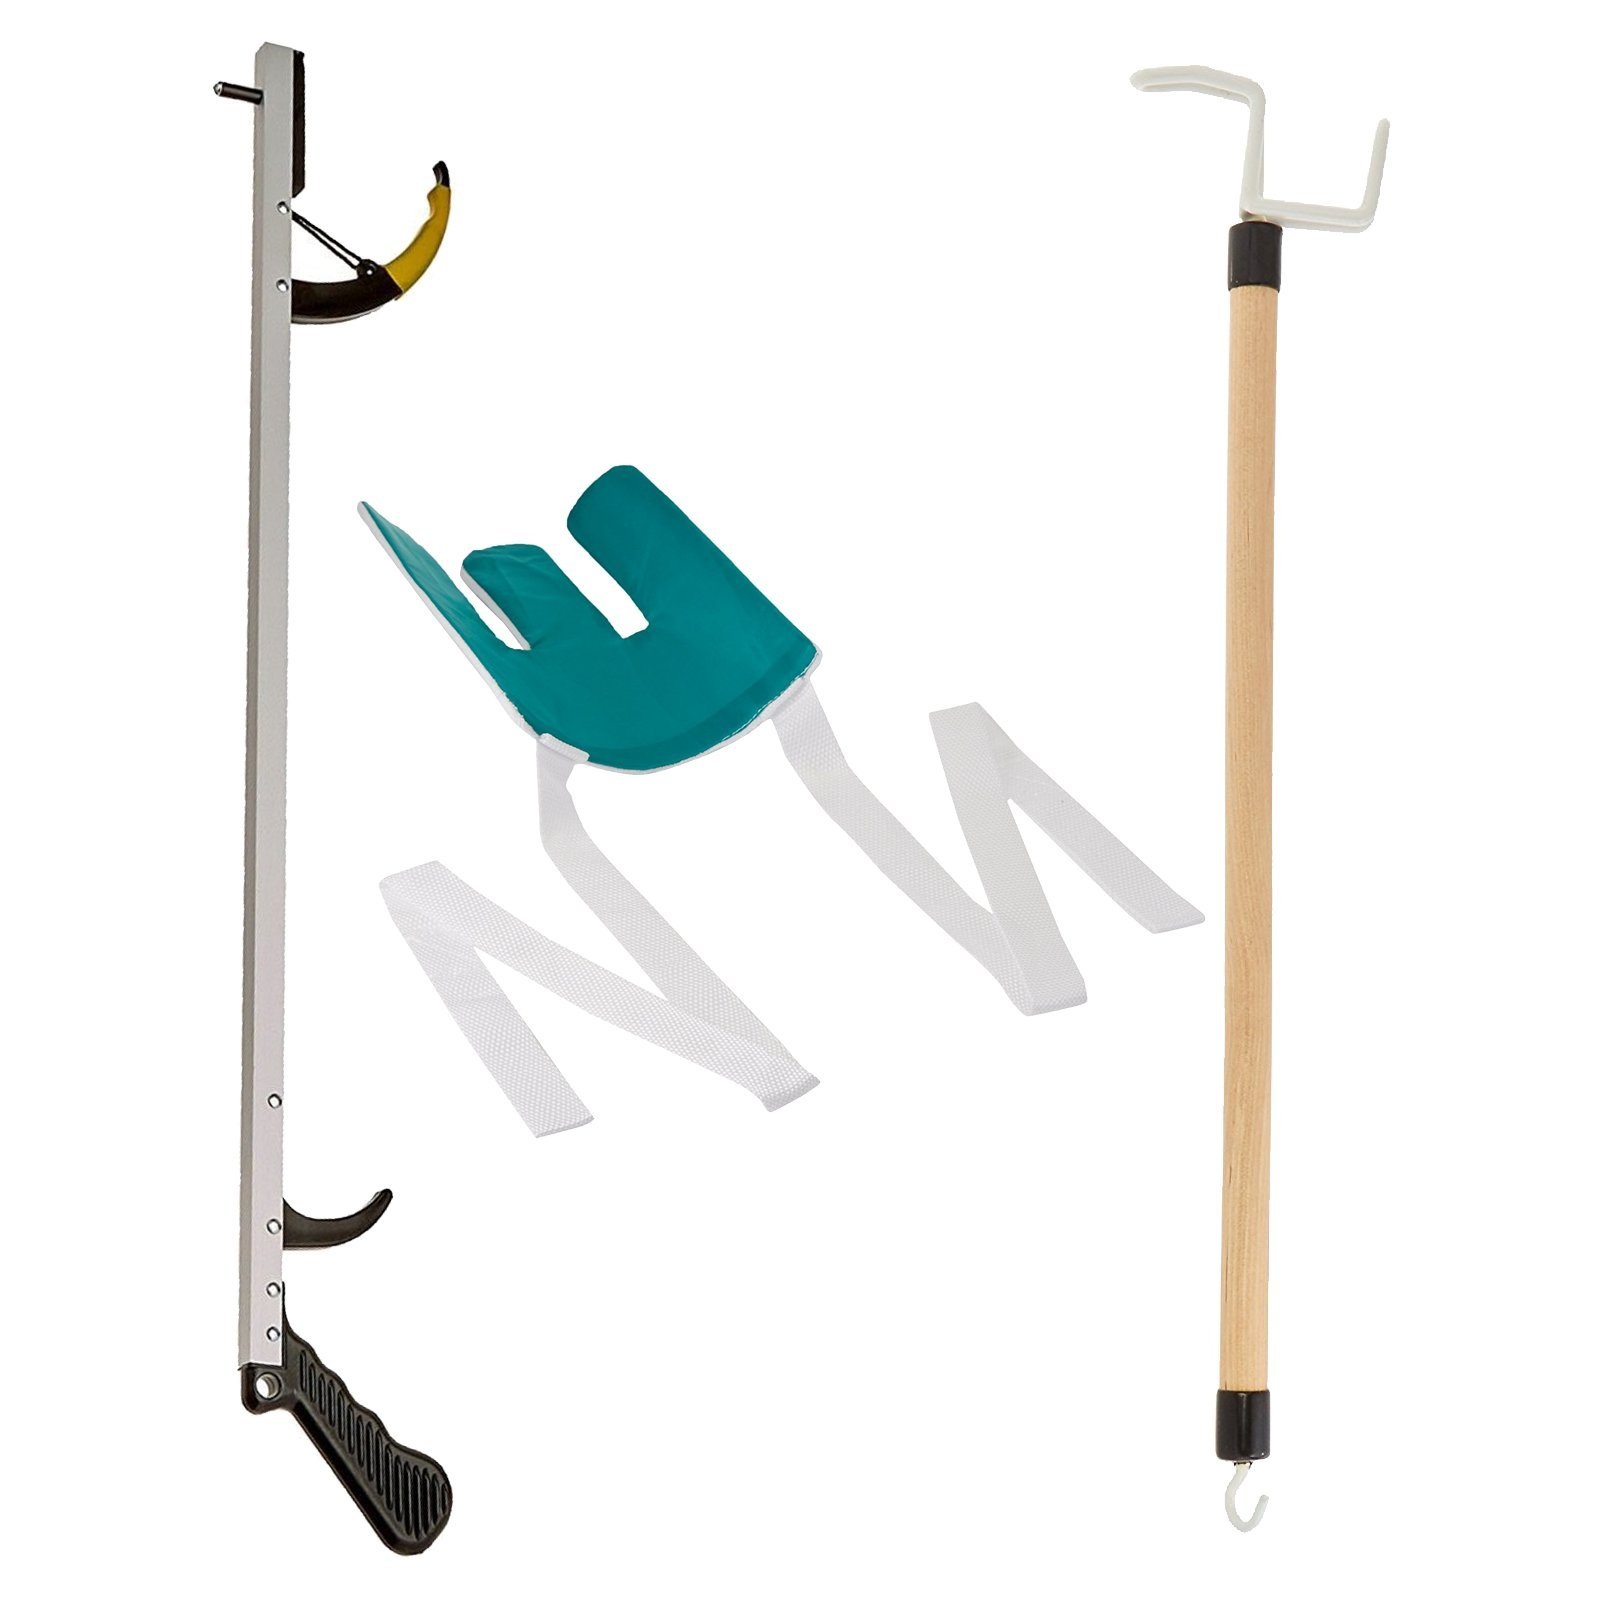 Sammons Preston Assistive Device Kit 4, Includes 26'' SPR Reacher, Flexible Sock Aid & 26'' Dressing Stick, Adaptive Dressing & Independent Daily Living Aid for Those with Limited Reaching Ability by Sammons Preston